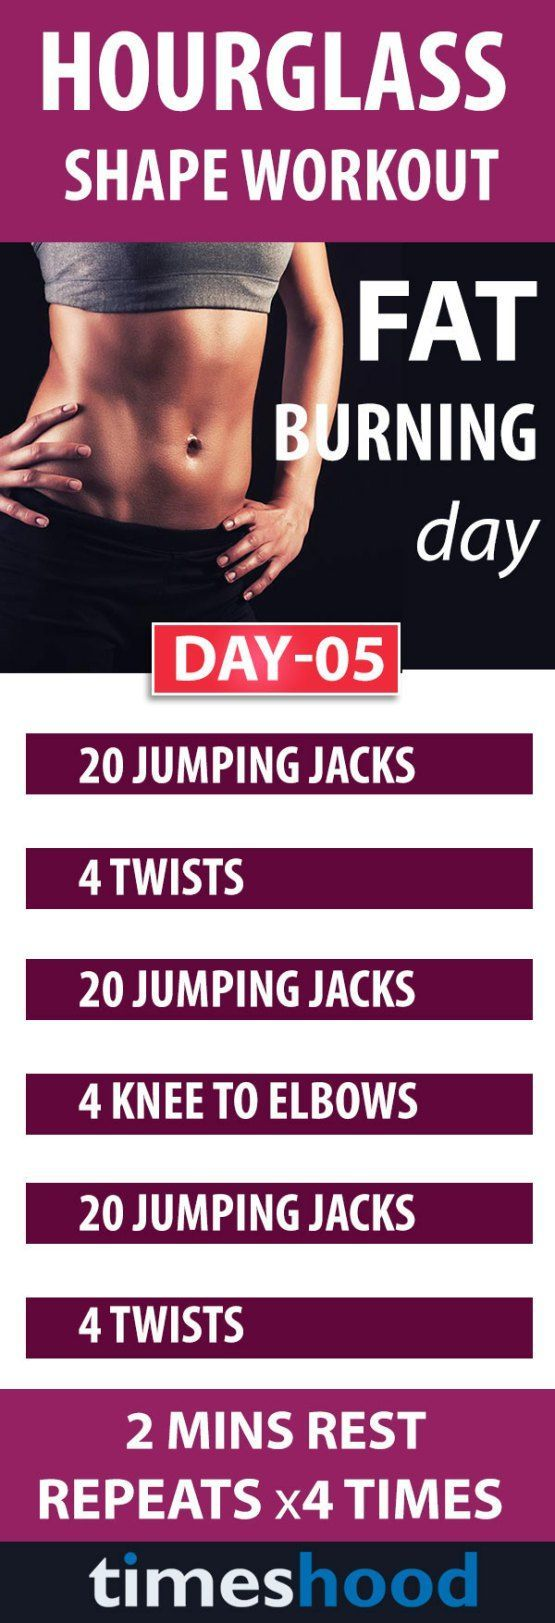 Trying to get an hourglass figures? Try this total body workouts to get an hourglass shape. Its 10 days workouts plan for beautiful curves, sexy abs, slim waist, and bigger butt. Every day will target on different body part. Best workouts for women. Fat burning workouts plan: day 5. Best workouts plan for women. Total body workouts for women. Best exercise for hourglass shape. Best tips to get an hourglass shape. Fat burning workouts plan. #exercisetips